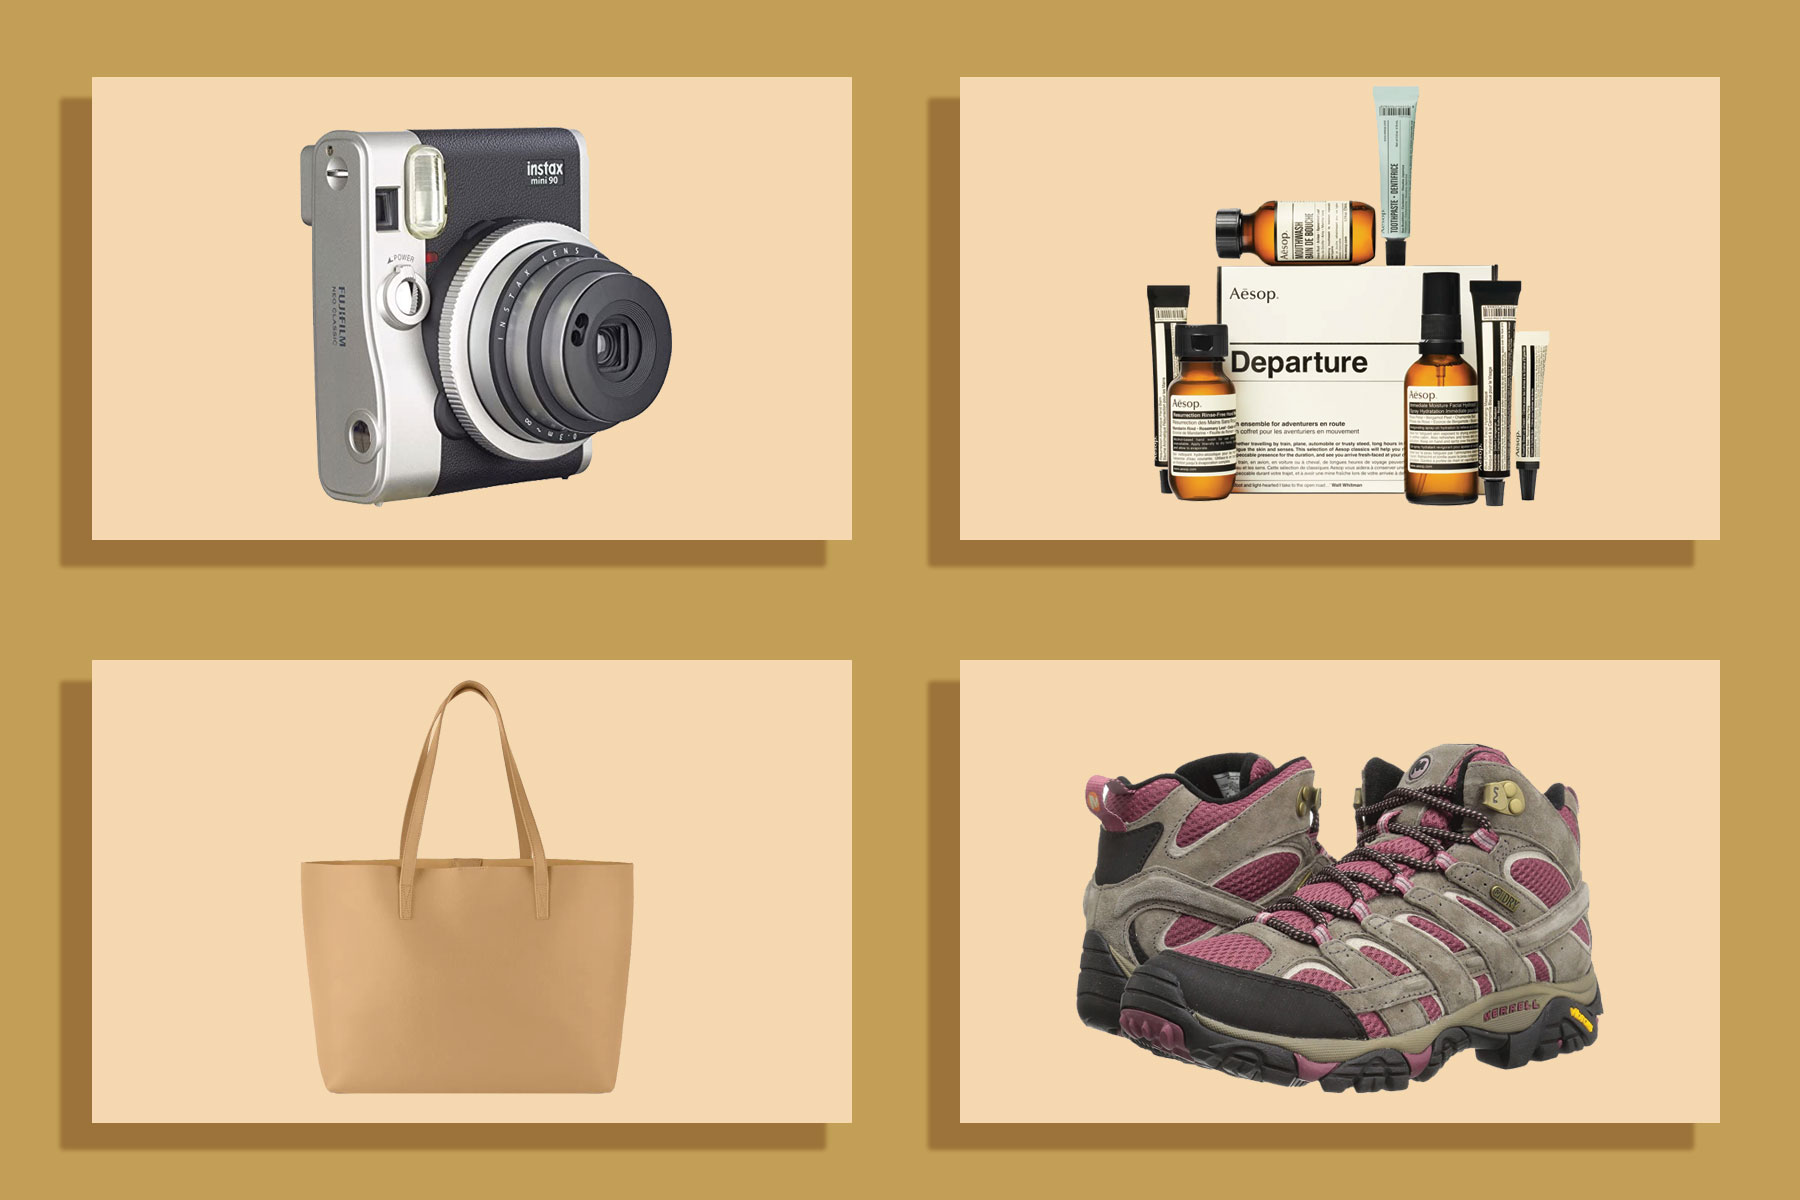 Camera, toiletries, tote, hiking boots